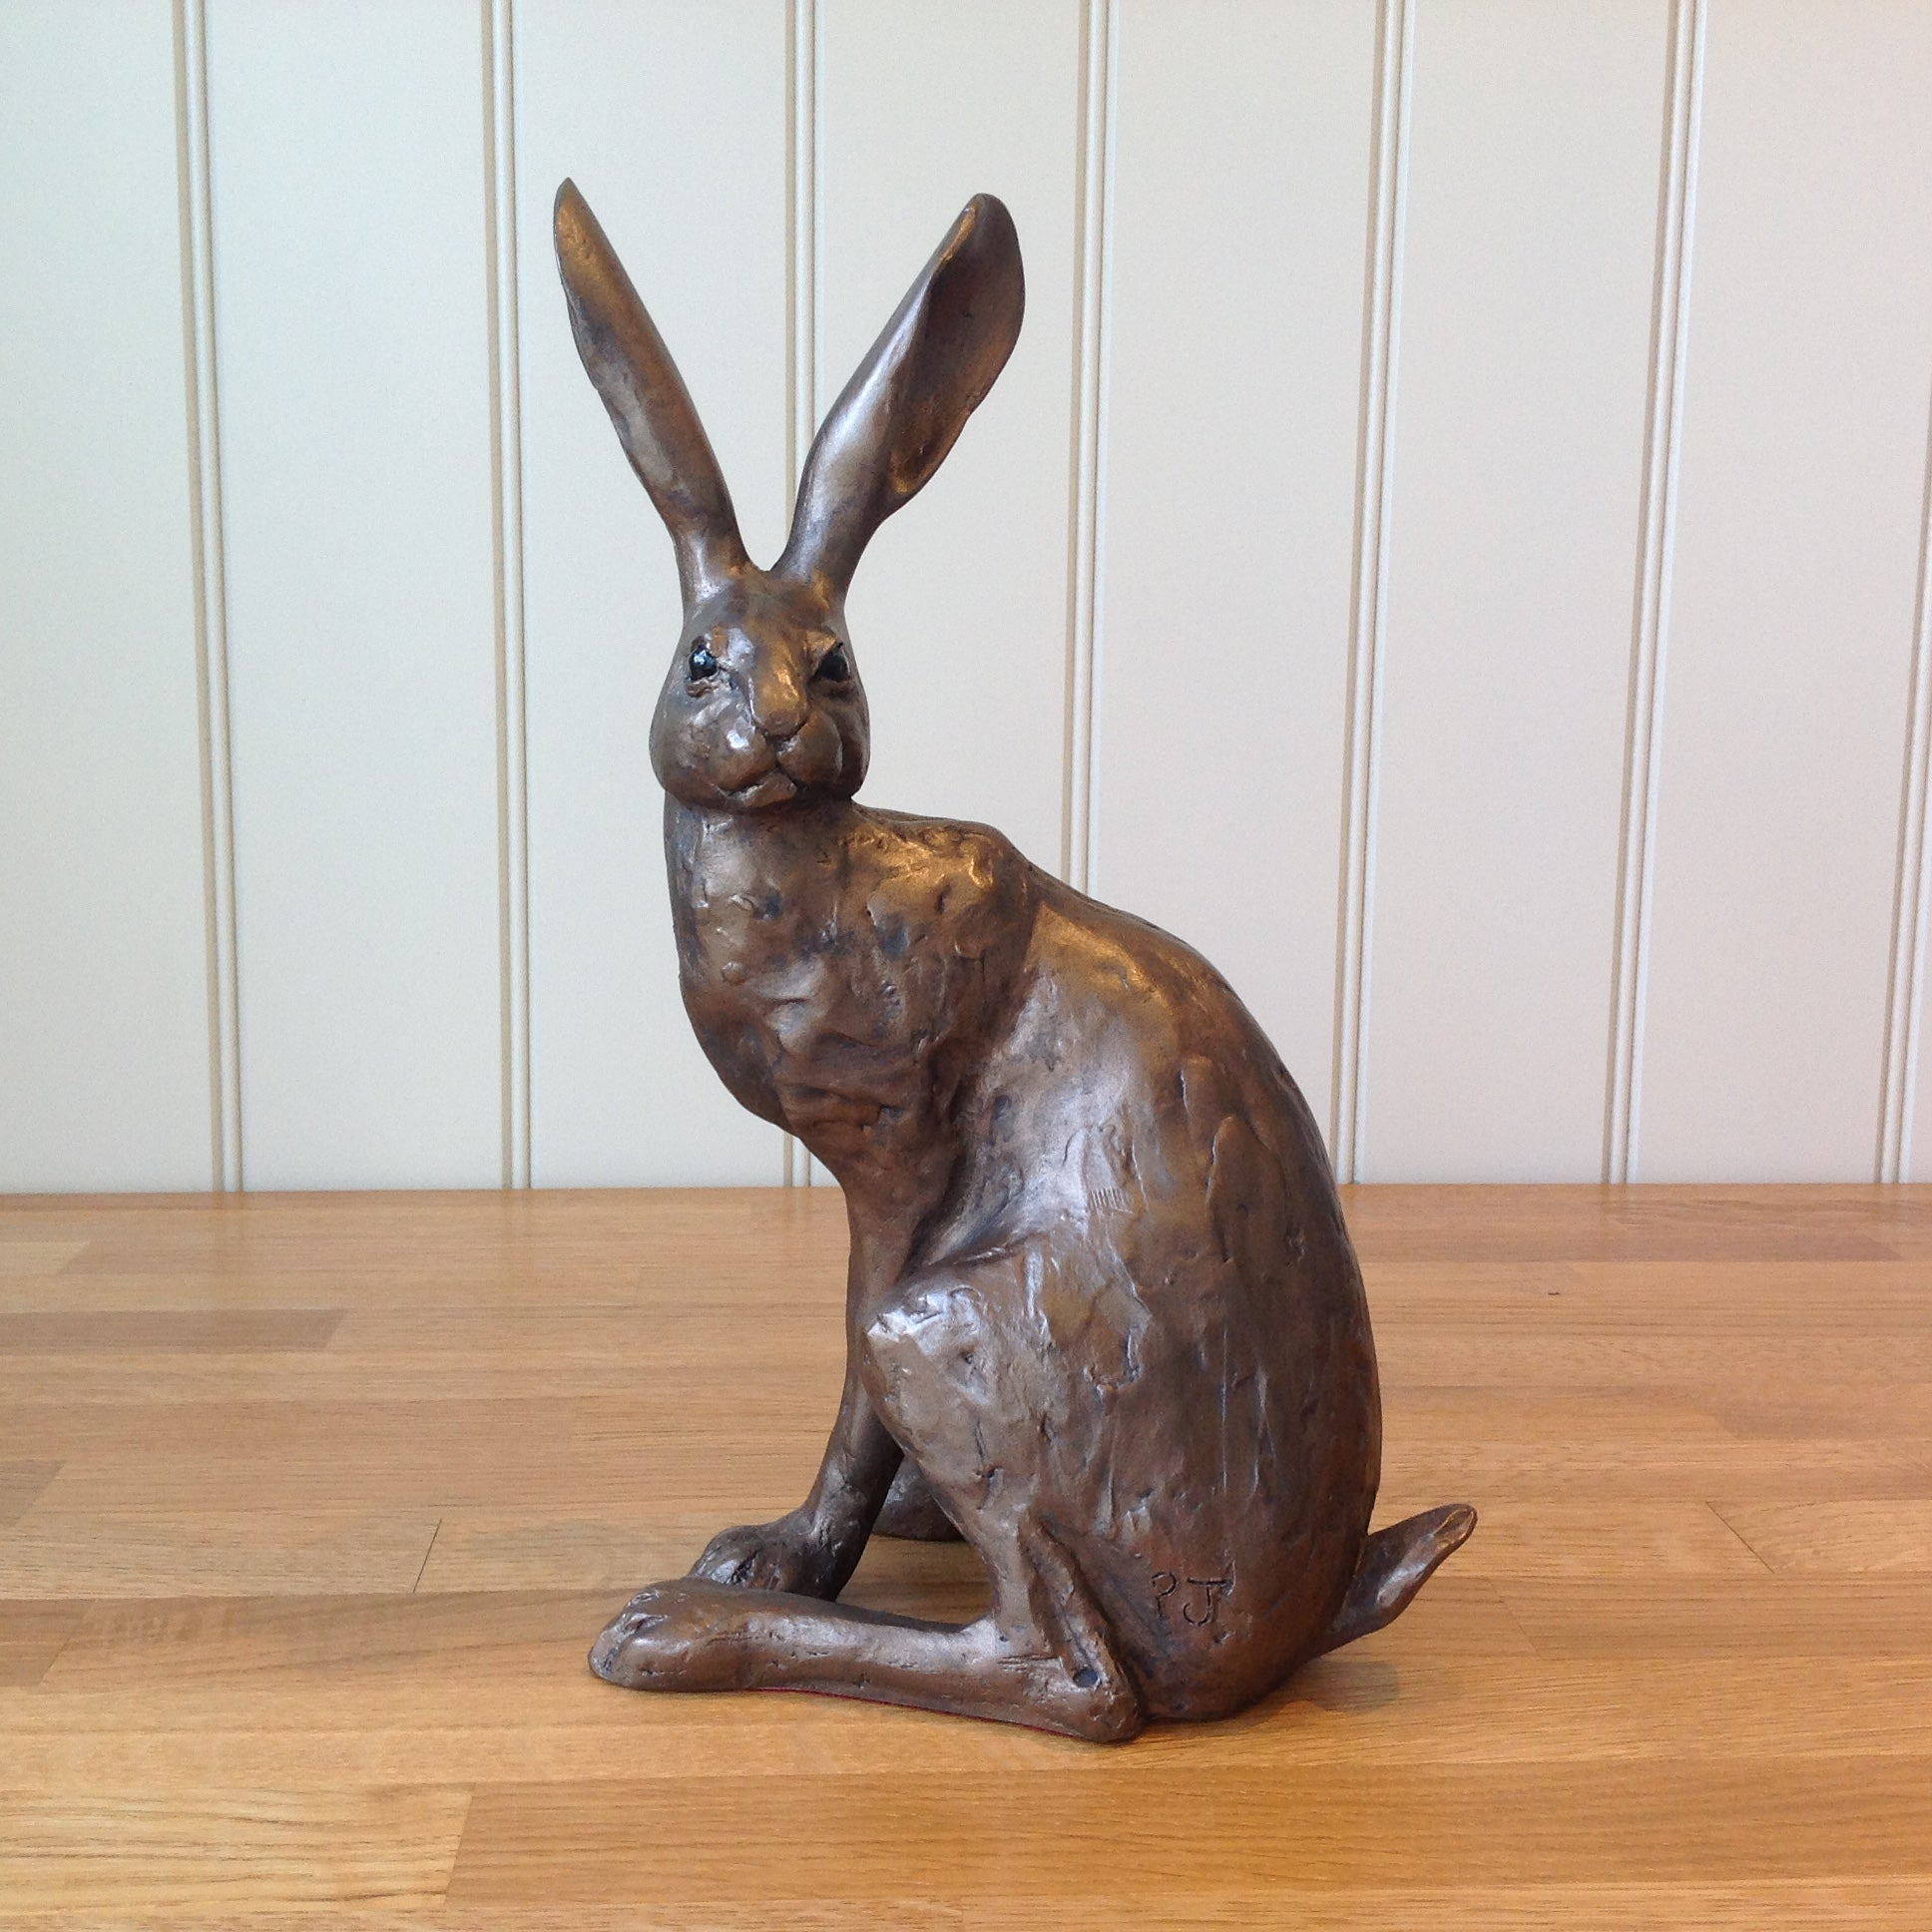 S105 Frith Sculpture HENRIETTA HARE by Paul Jenkins in cold cast bronze